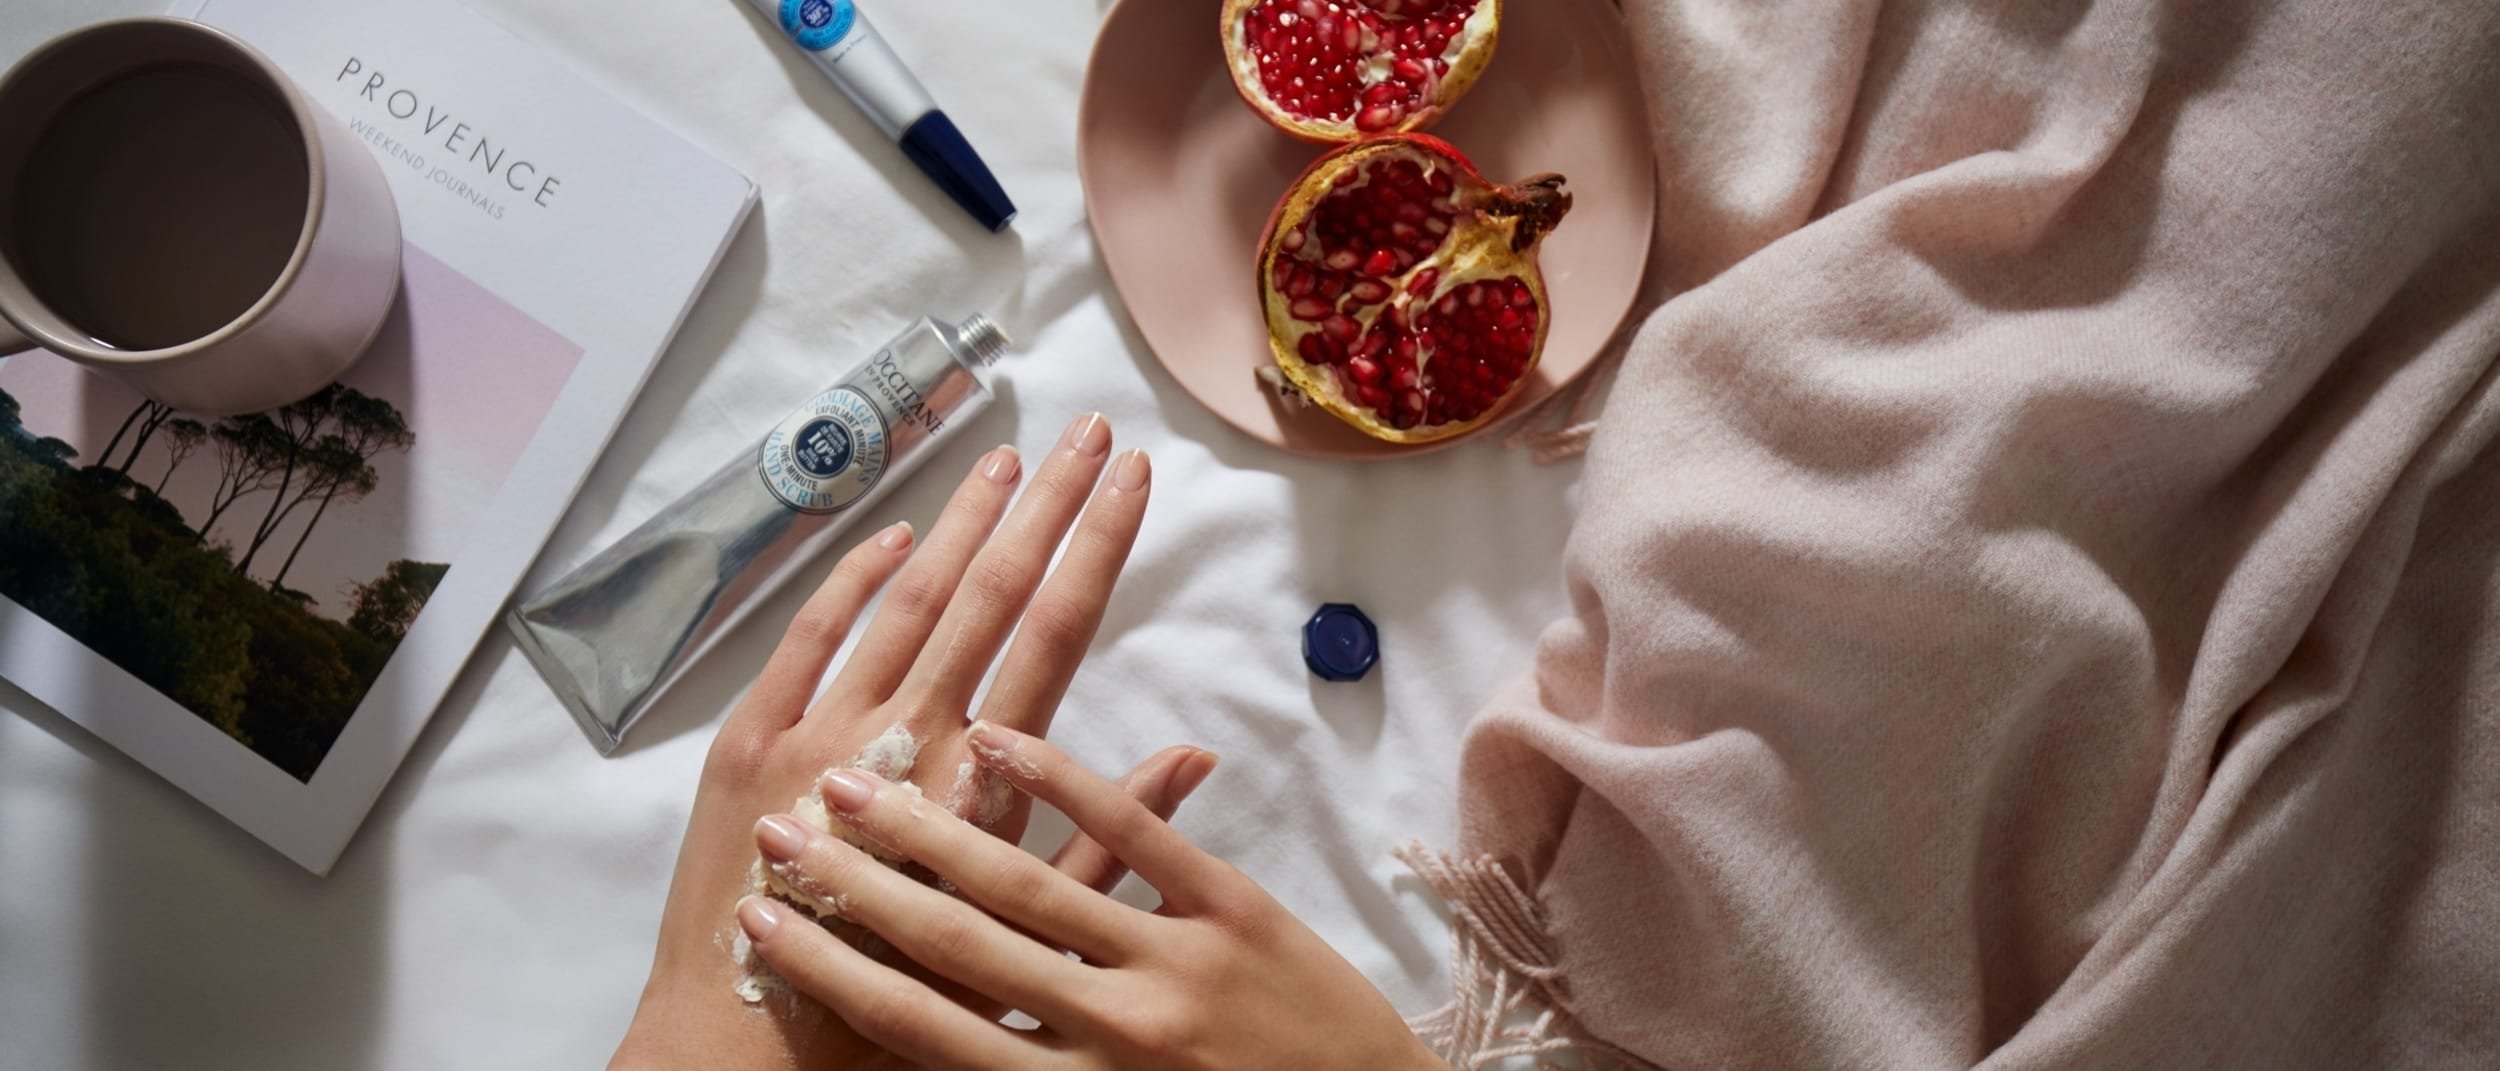 L'OCCITANE: Pamper yourself for the new year